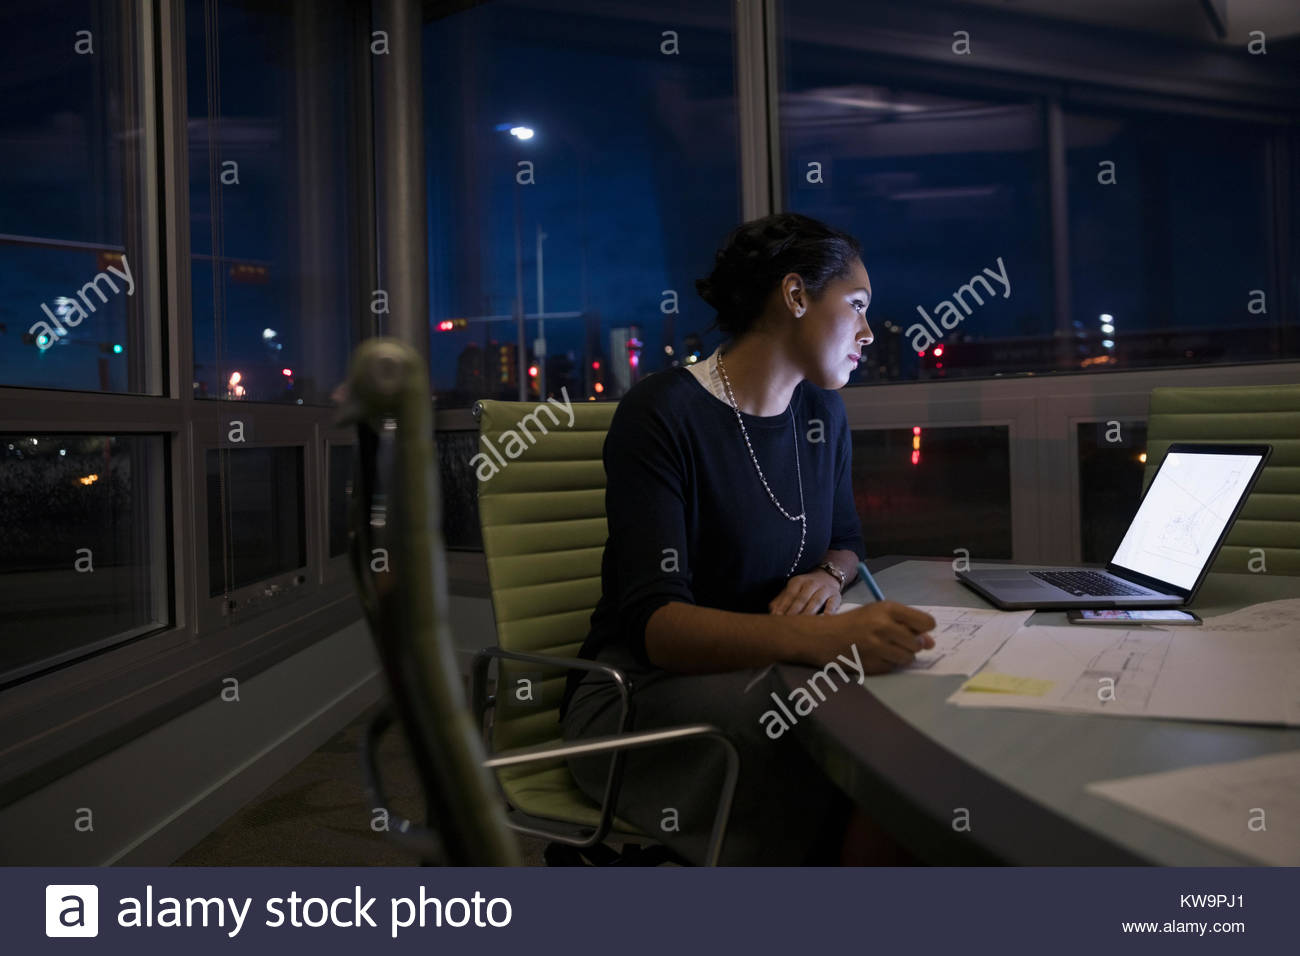 Dedicated female architect working late at laptop,editing blueprints in dark conference room - Stock Image